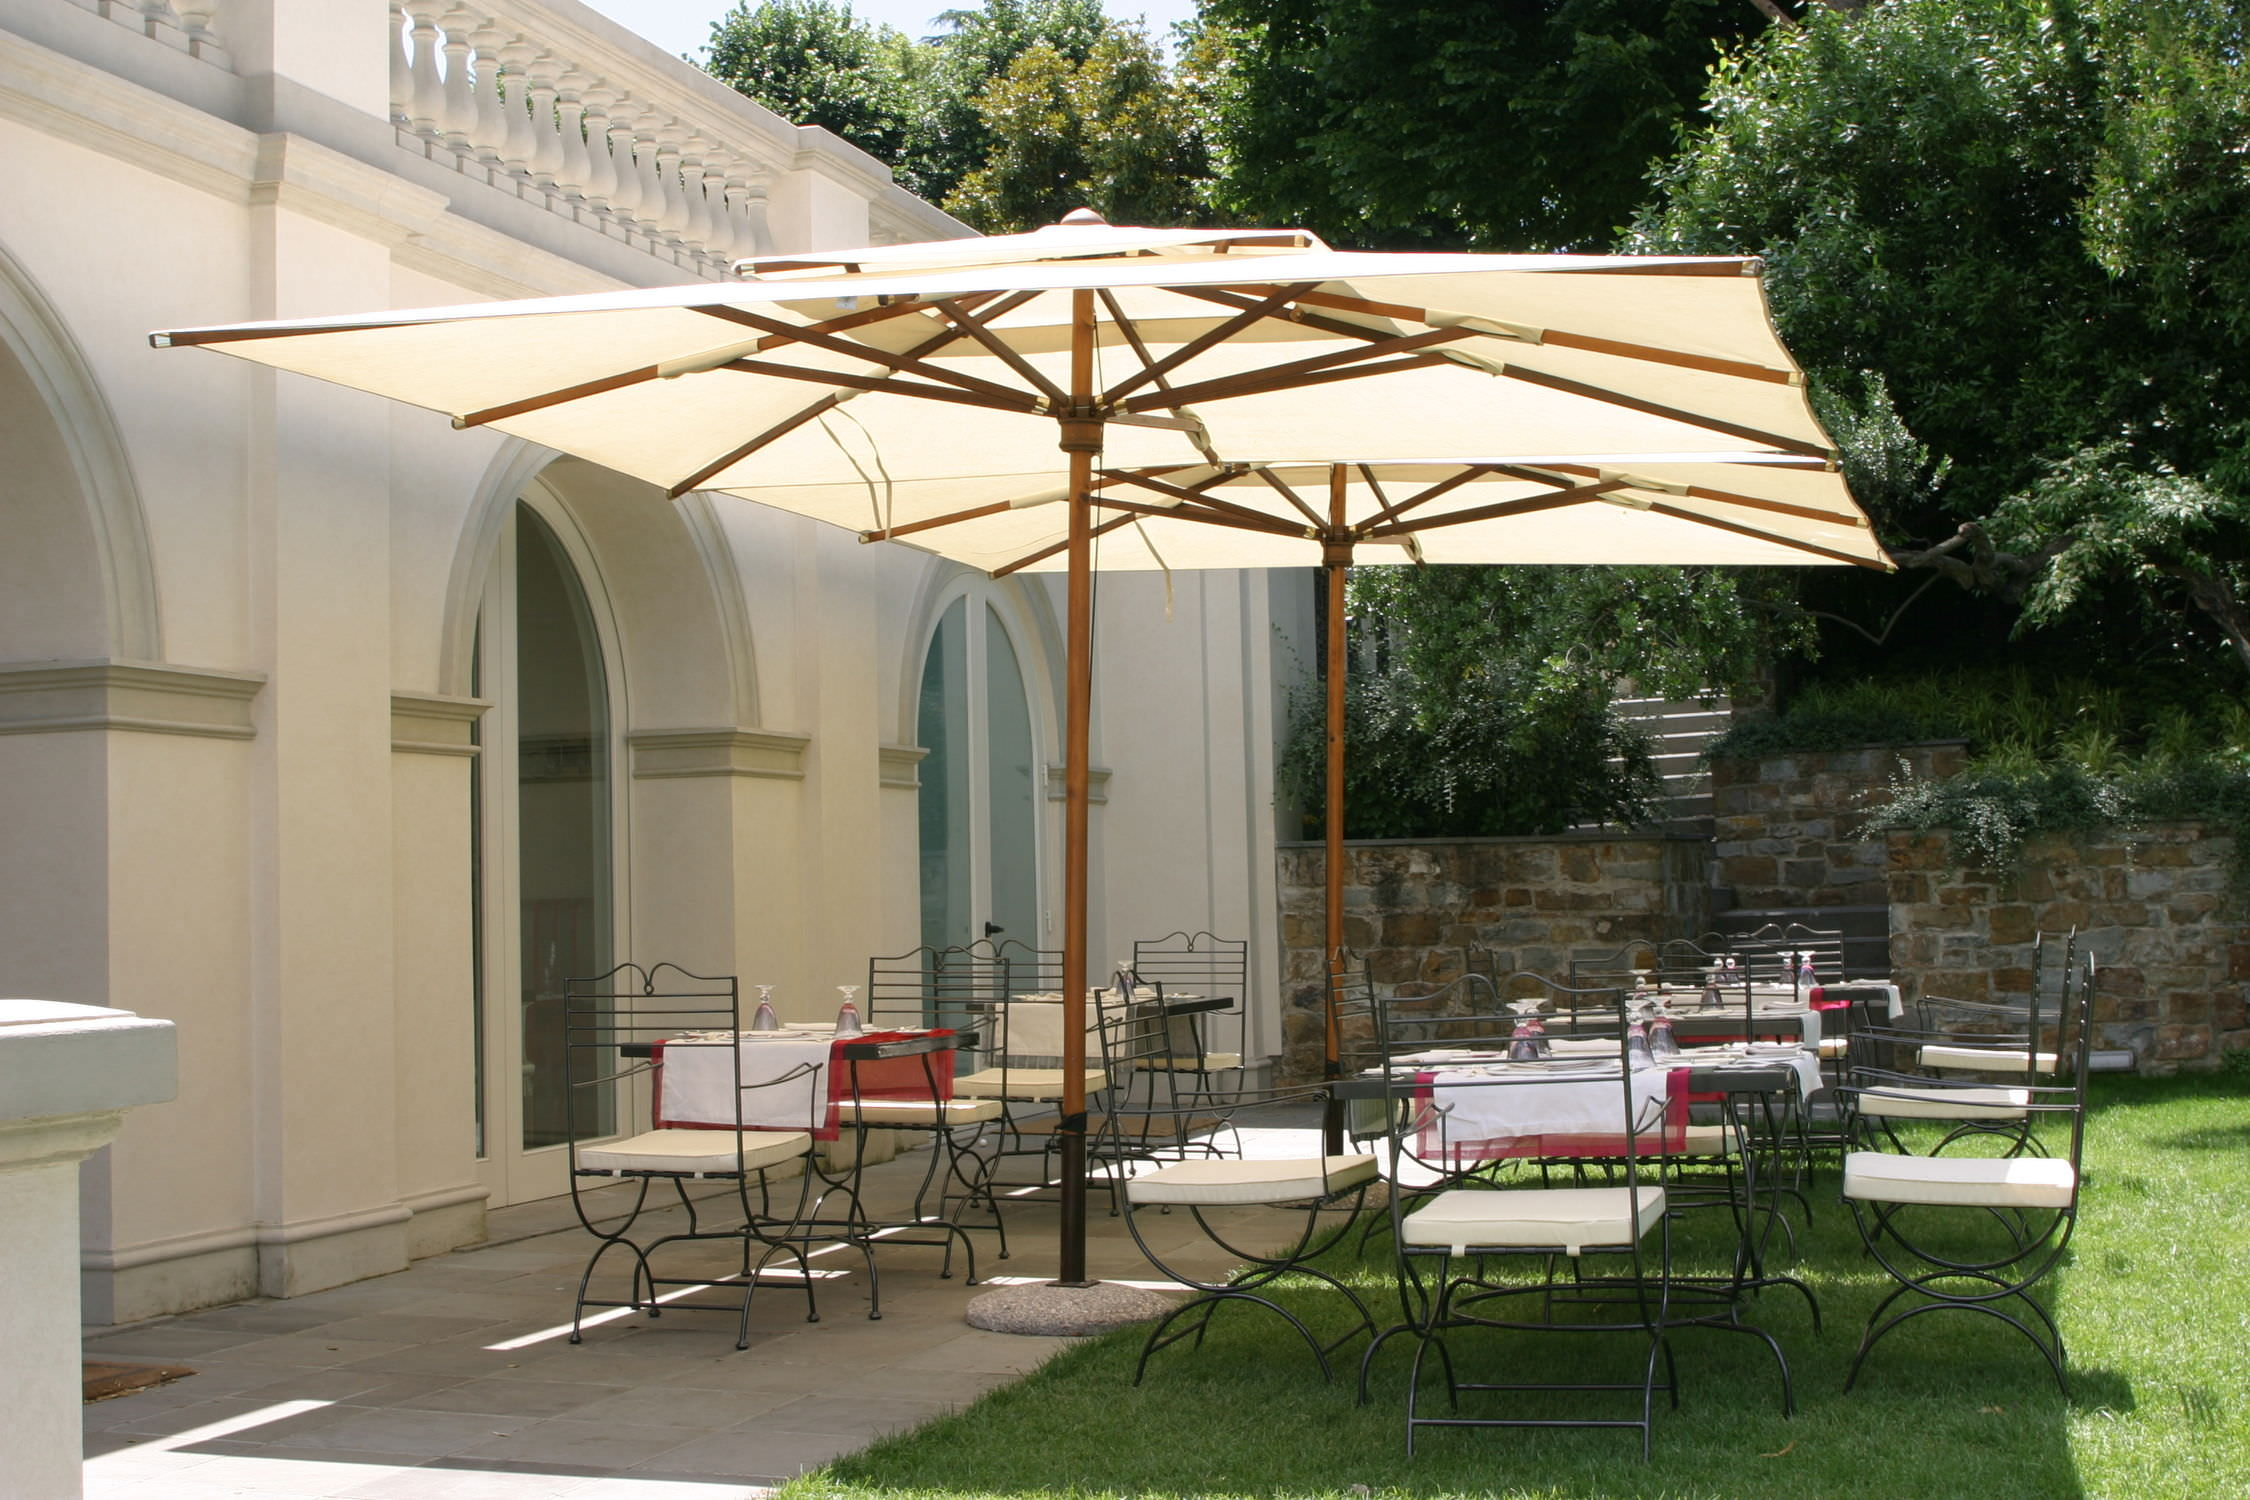 Aluminum fset Patio Umbrella